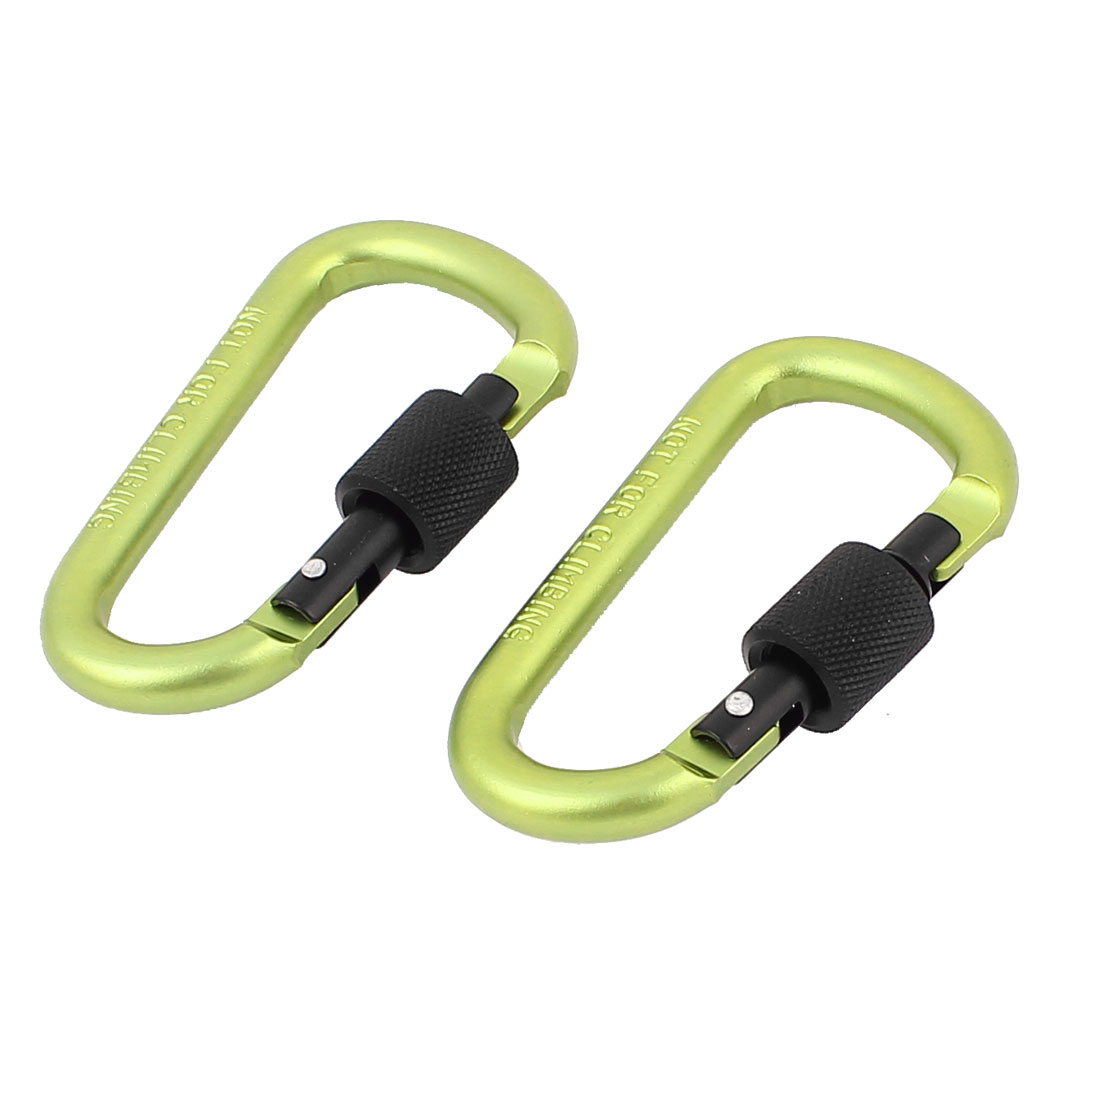 Spring Loaded Screw Locking Snap Carabiner Hook Clip Key Carrier Green 2Pcs